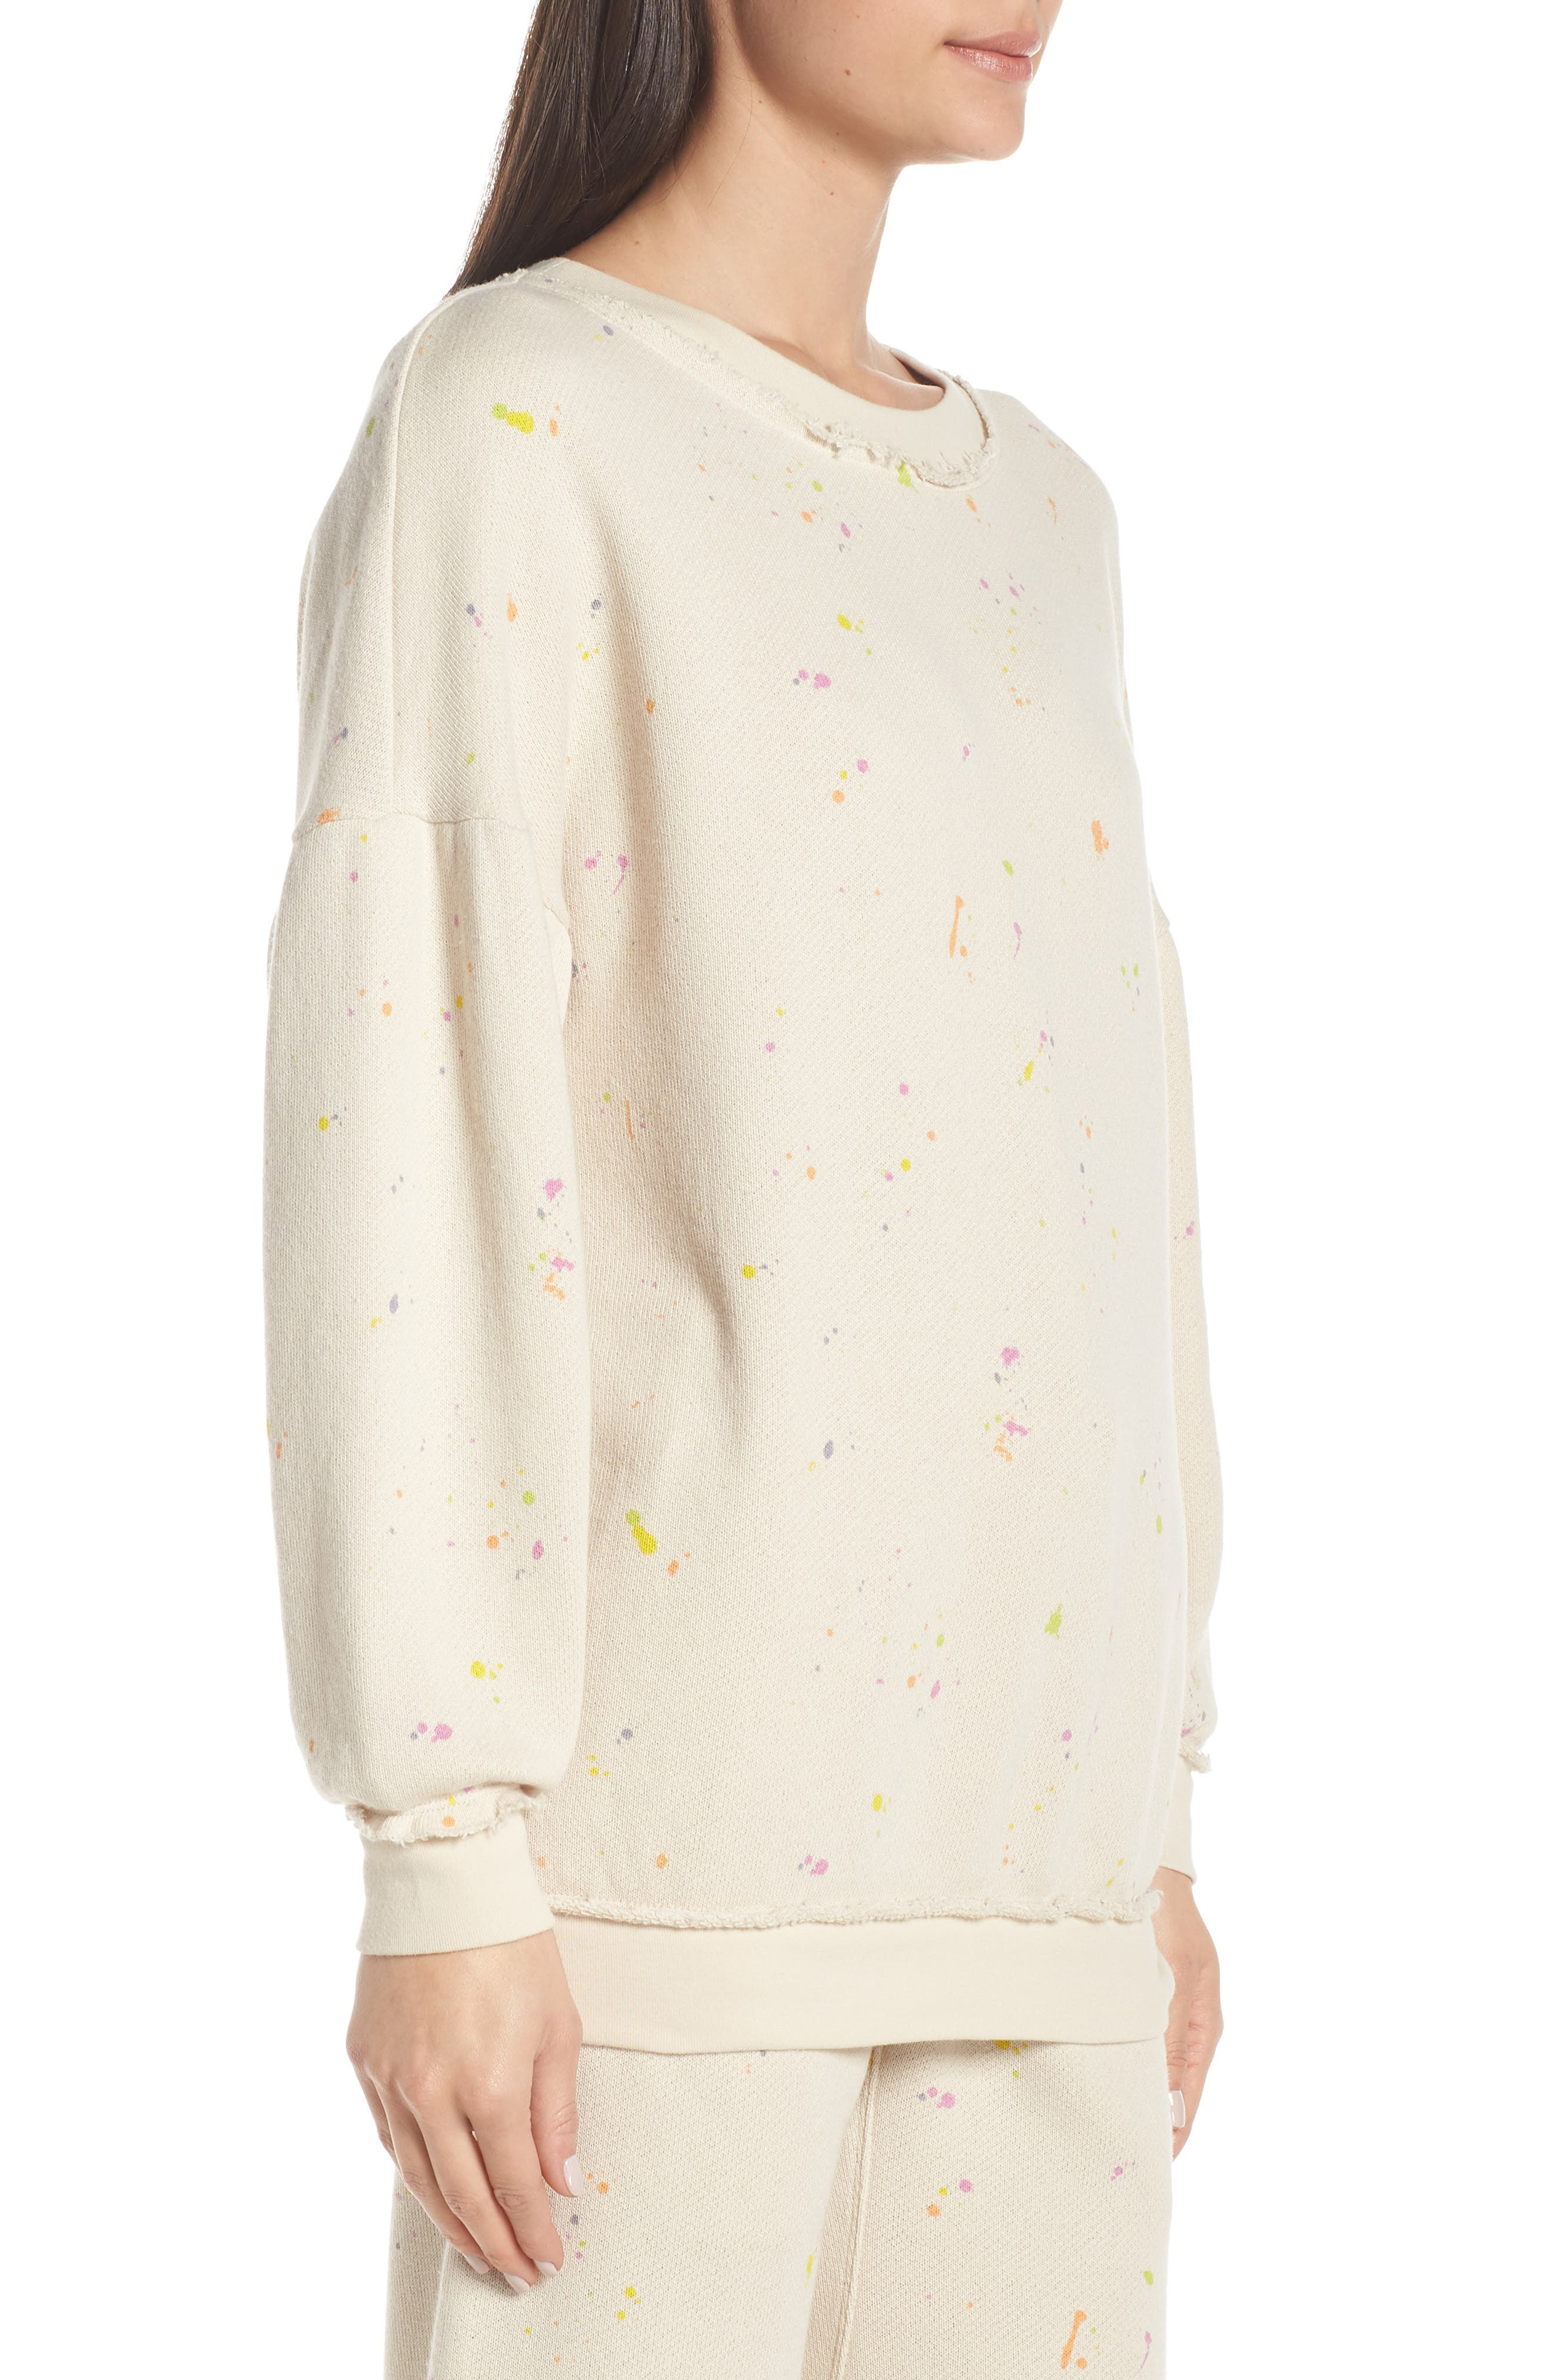 FREE PEOPLE MOVEMENT, Make It Count Printed Sweatshirt, Alternate thumbnail 4, color, IVORY